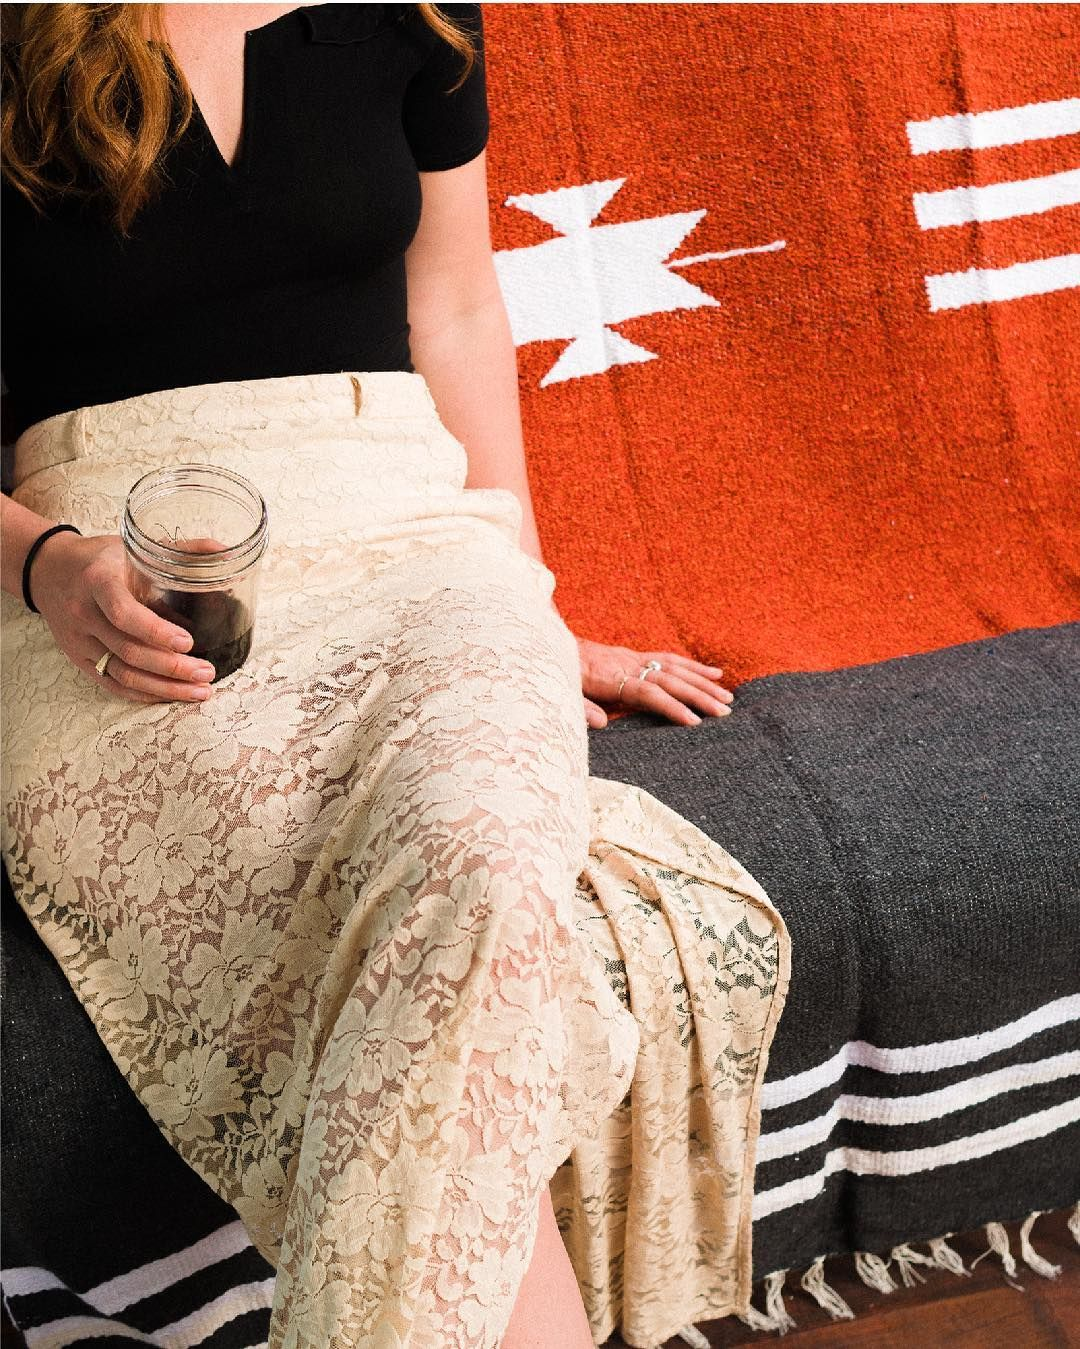 It S Been A Long Week Time To Relax And Maybe Have A Glass Of Wine Before Heading To Renegadecraft Tomorrow Hope To See So In 2020 Relax Time Lace Skirt Relax